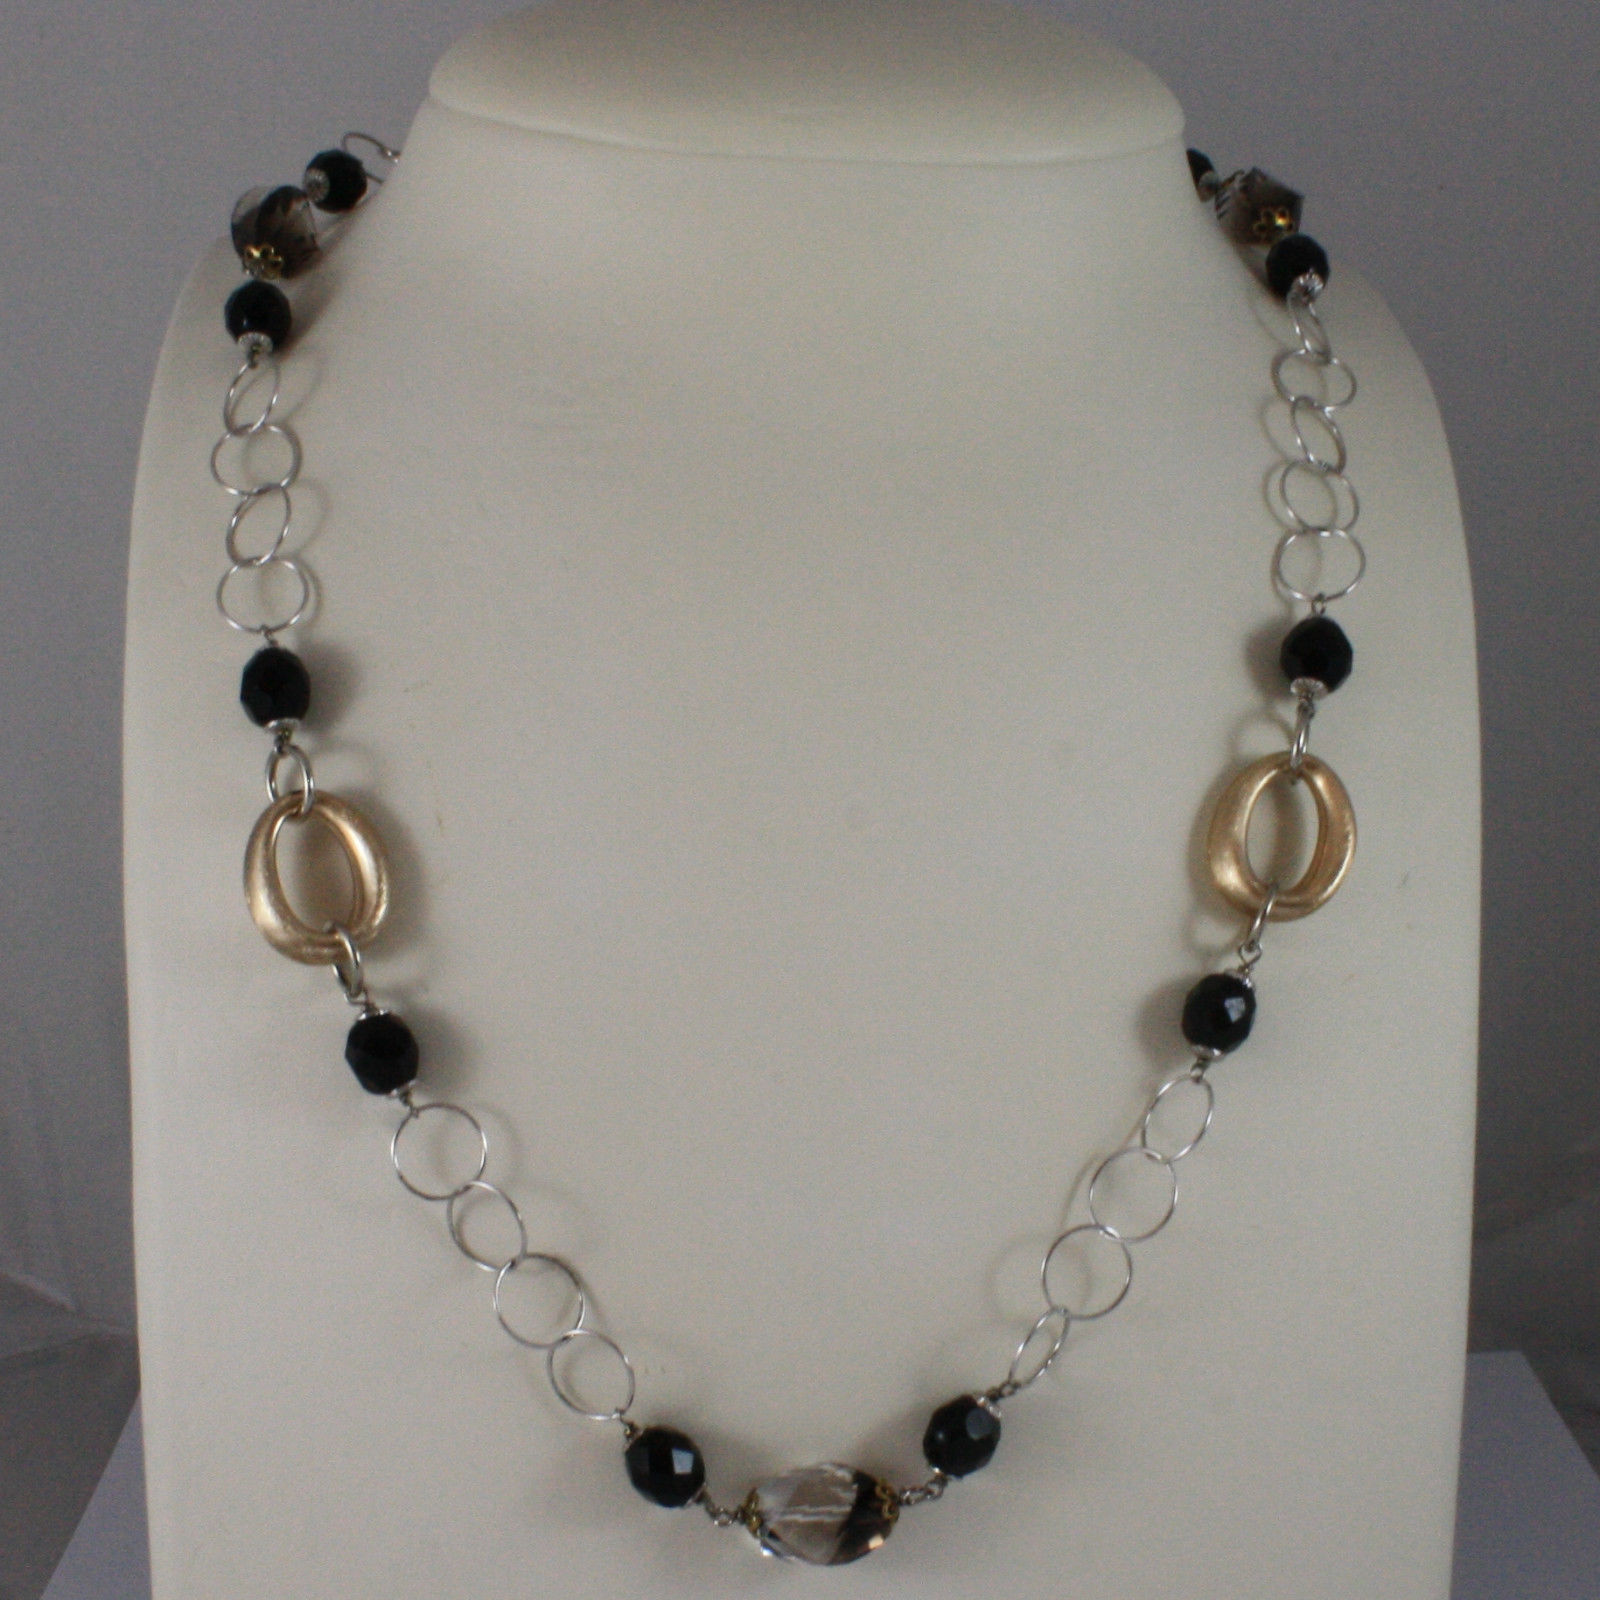 .925 SILVER RHODIUM NECKLACE WITH BLACK ONYX, SMOKY QUARTZ AND YELLOW GOLD OVALS